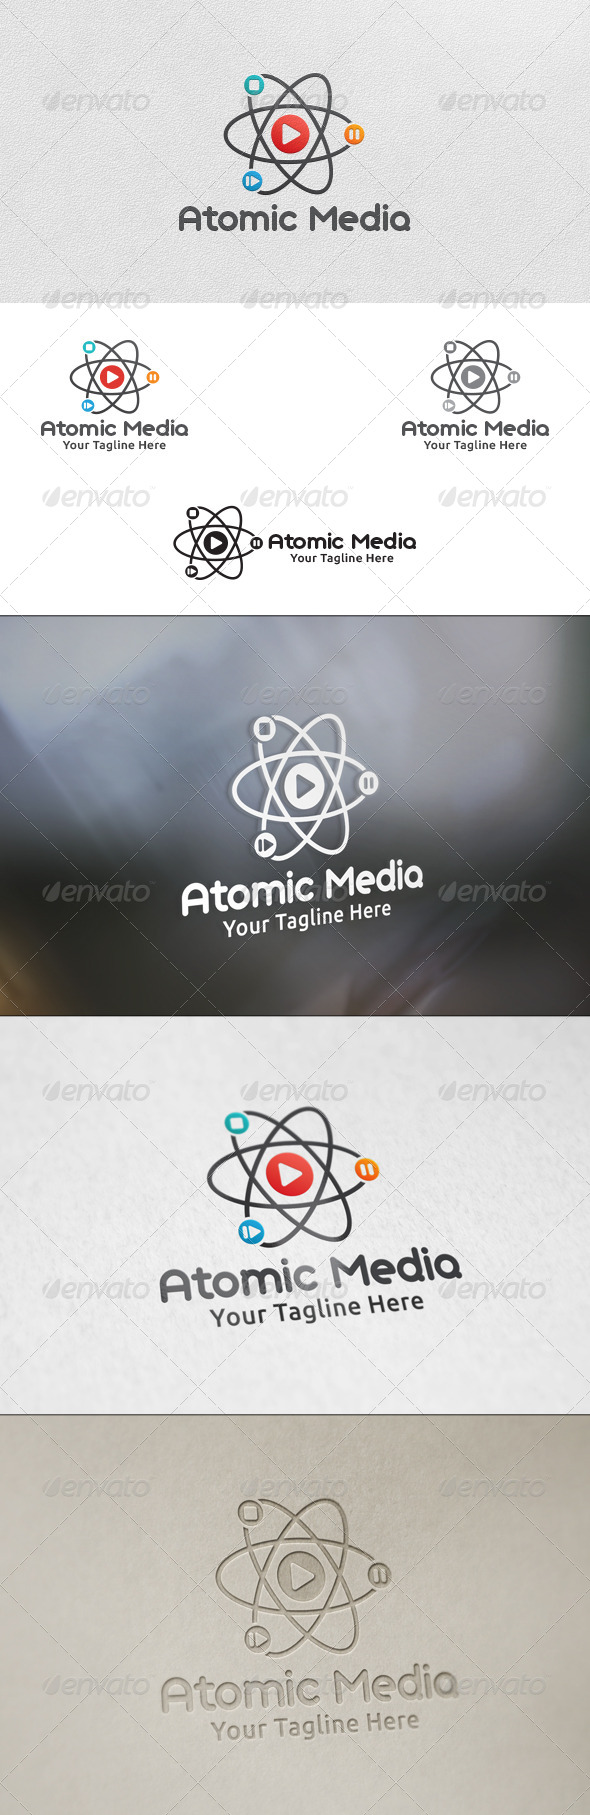 Atomic Media Logo Template